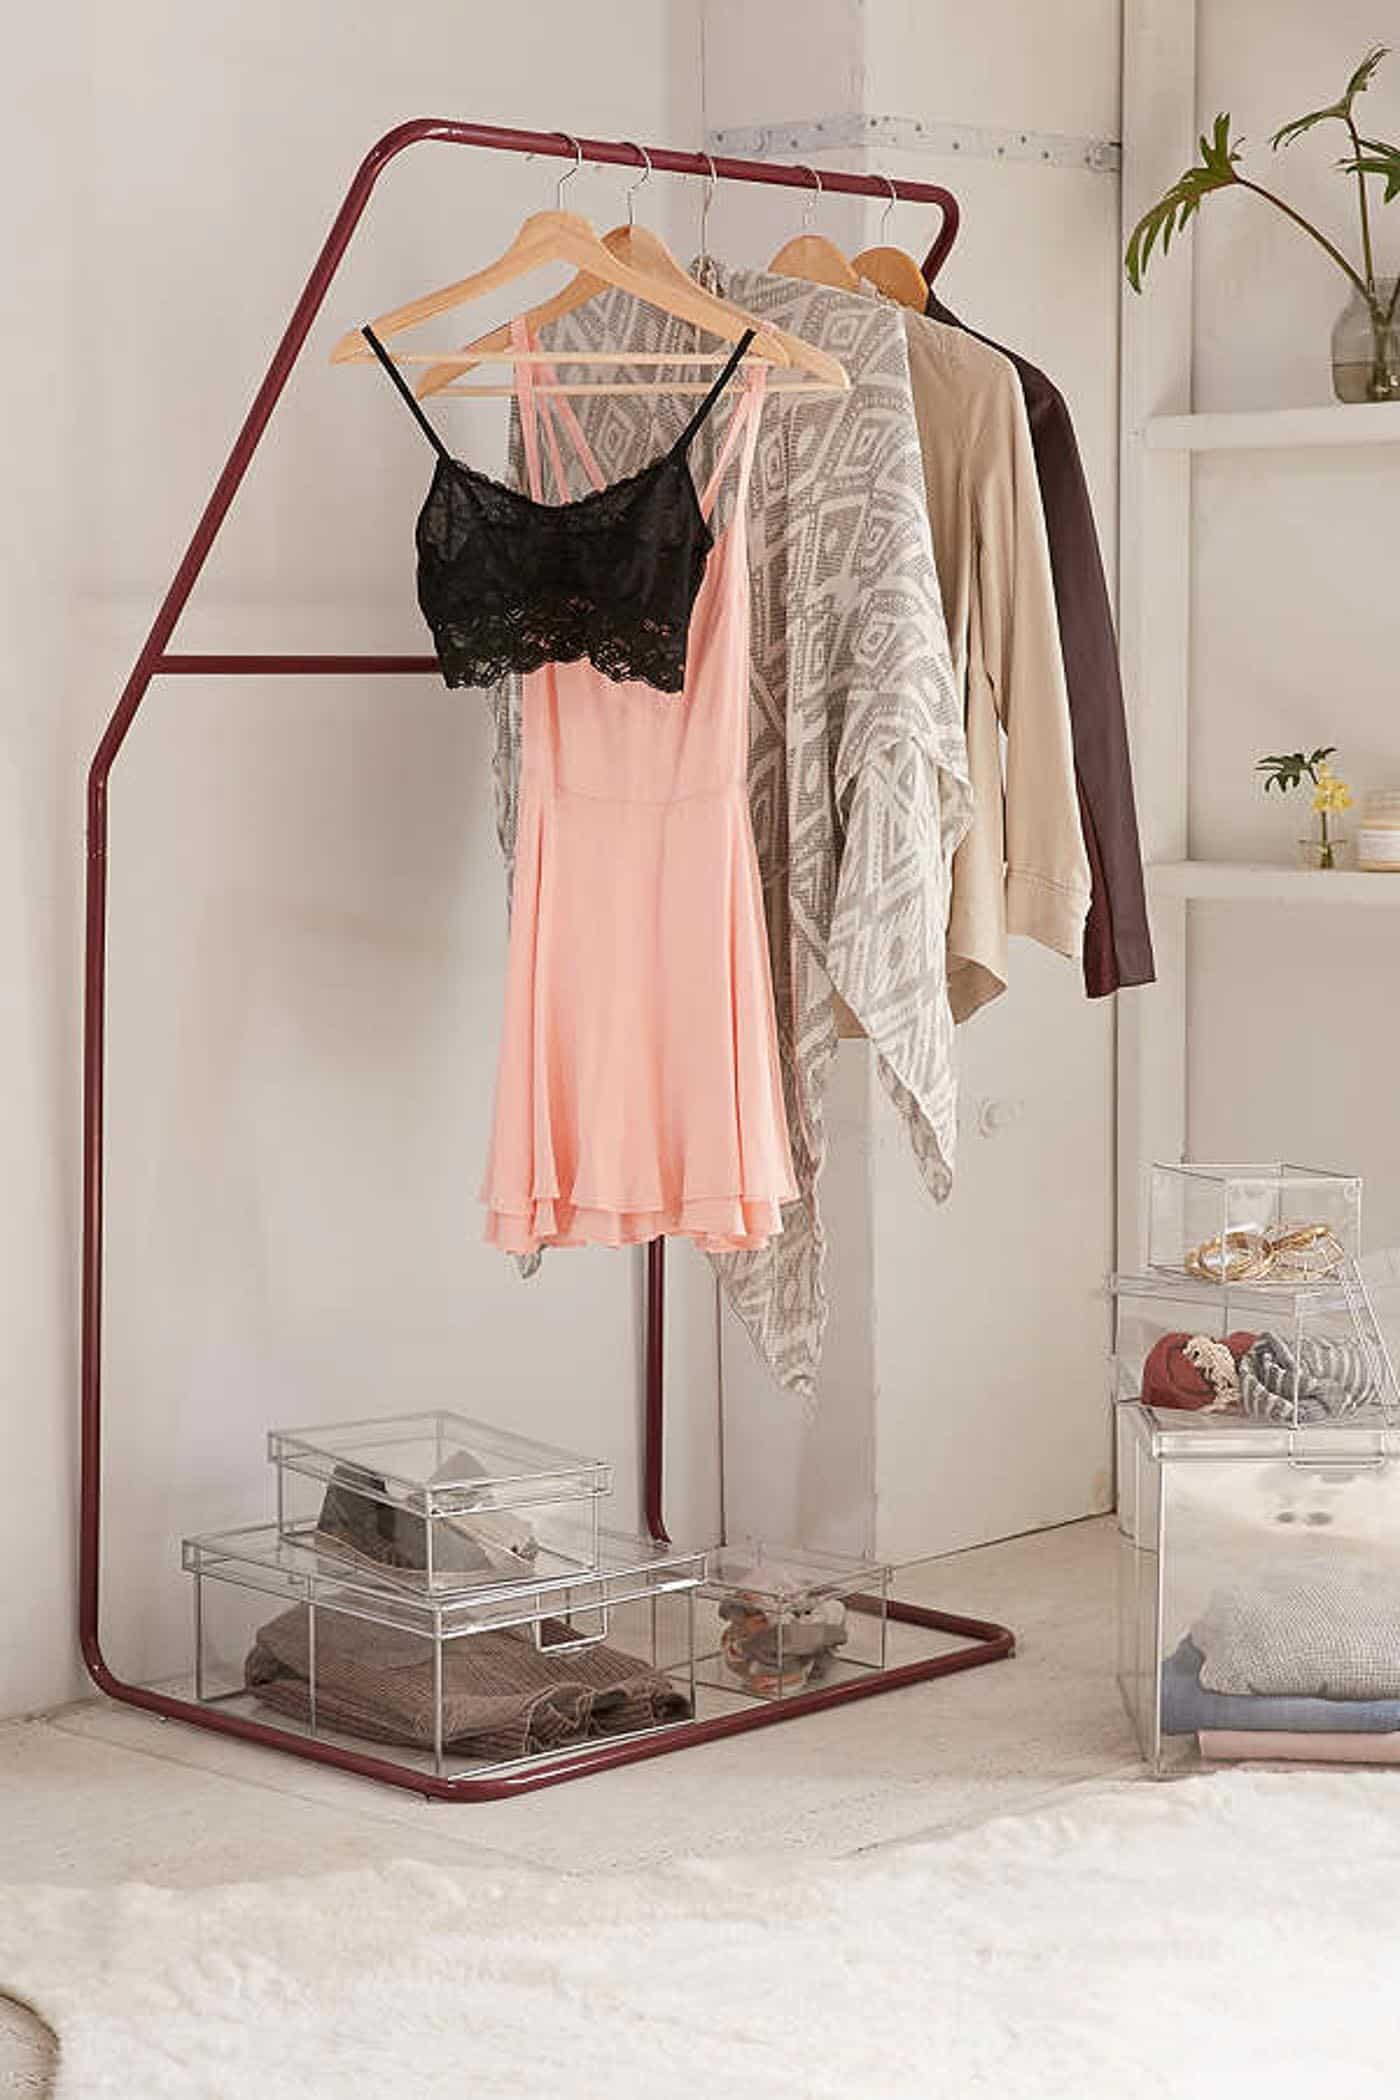 Alternative ways to store clothes